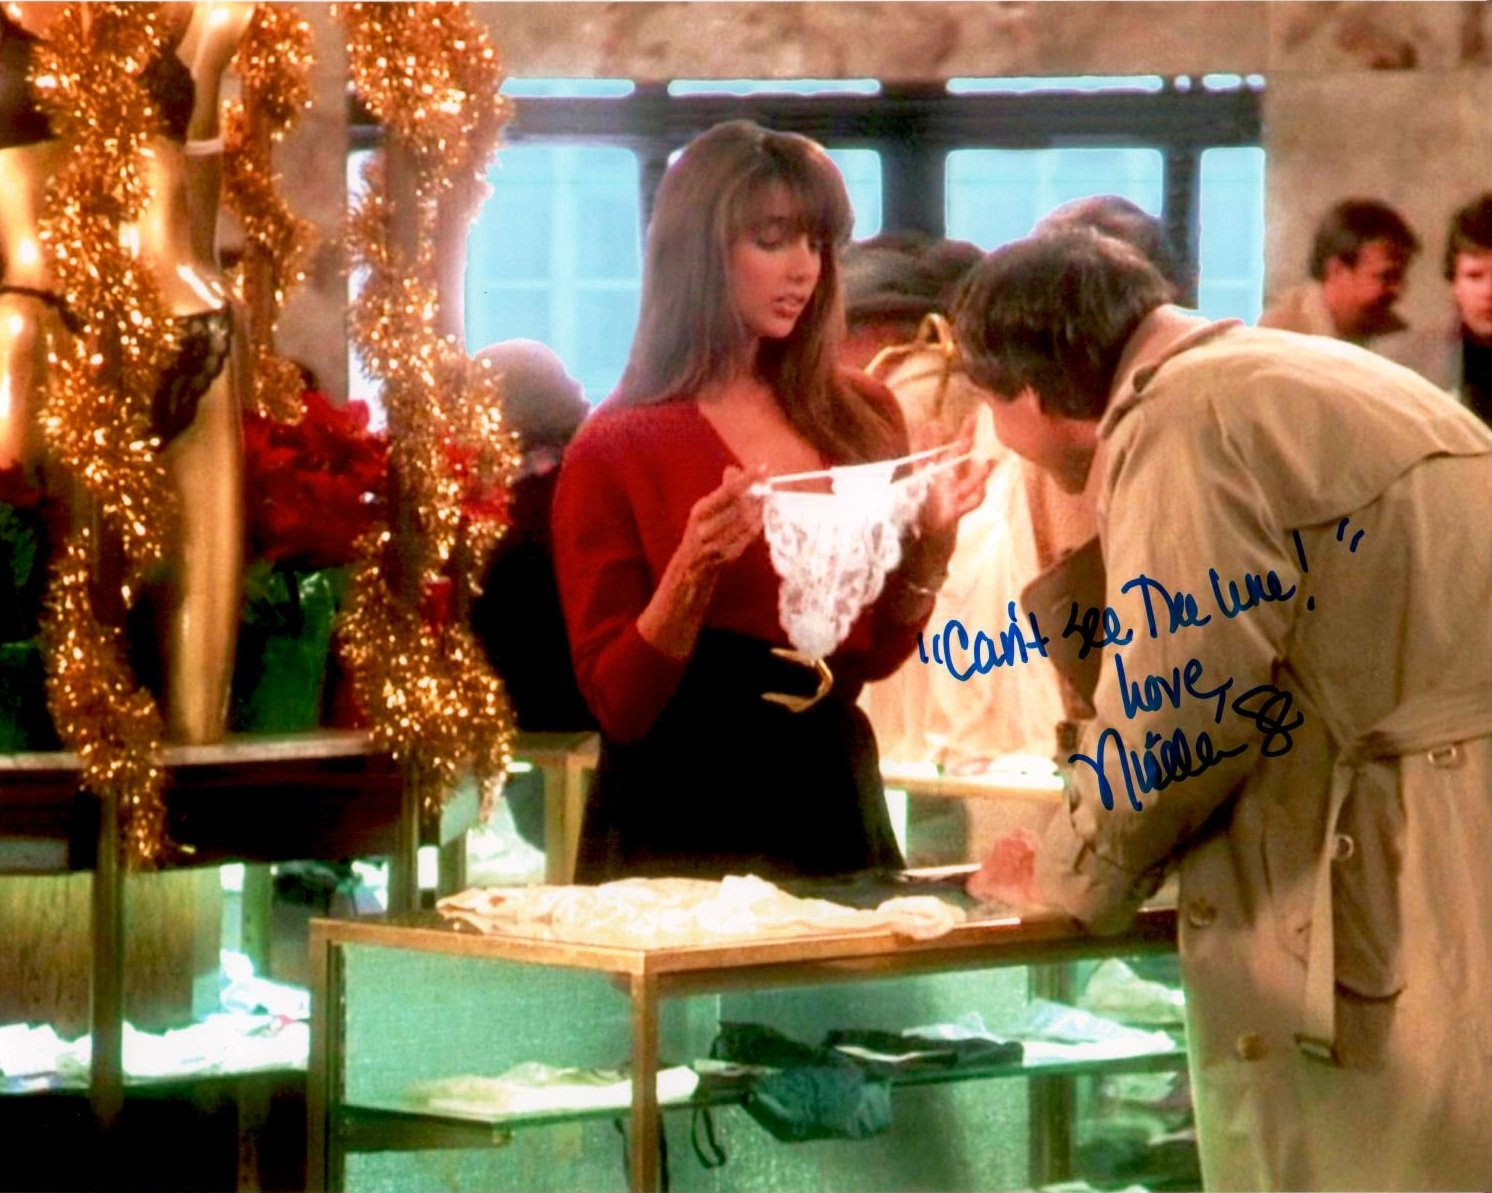 NICOLETTE SCORSESE Autographed/Signed Chevy Chase/Christmas Vacation 8x10 Photo with Special Inscription'Can't See the Line' NICOLETTE SCORSESE Autographed/Signed Chevy Chase/Christmas Vacation 8x10 Photo with Special InscriptionCan' t See the Line